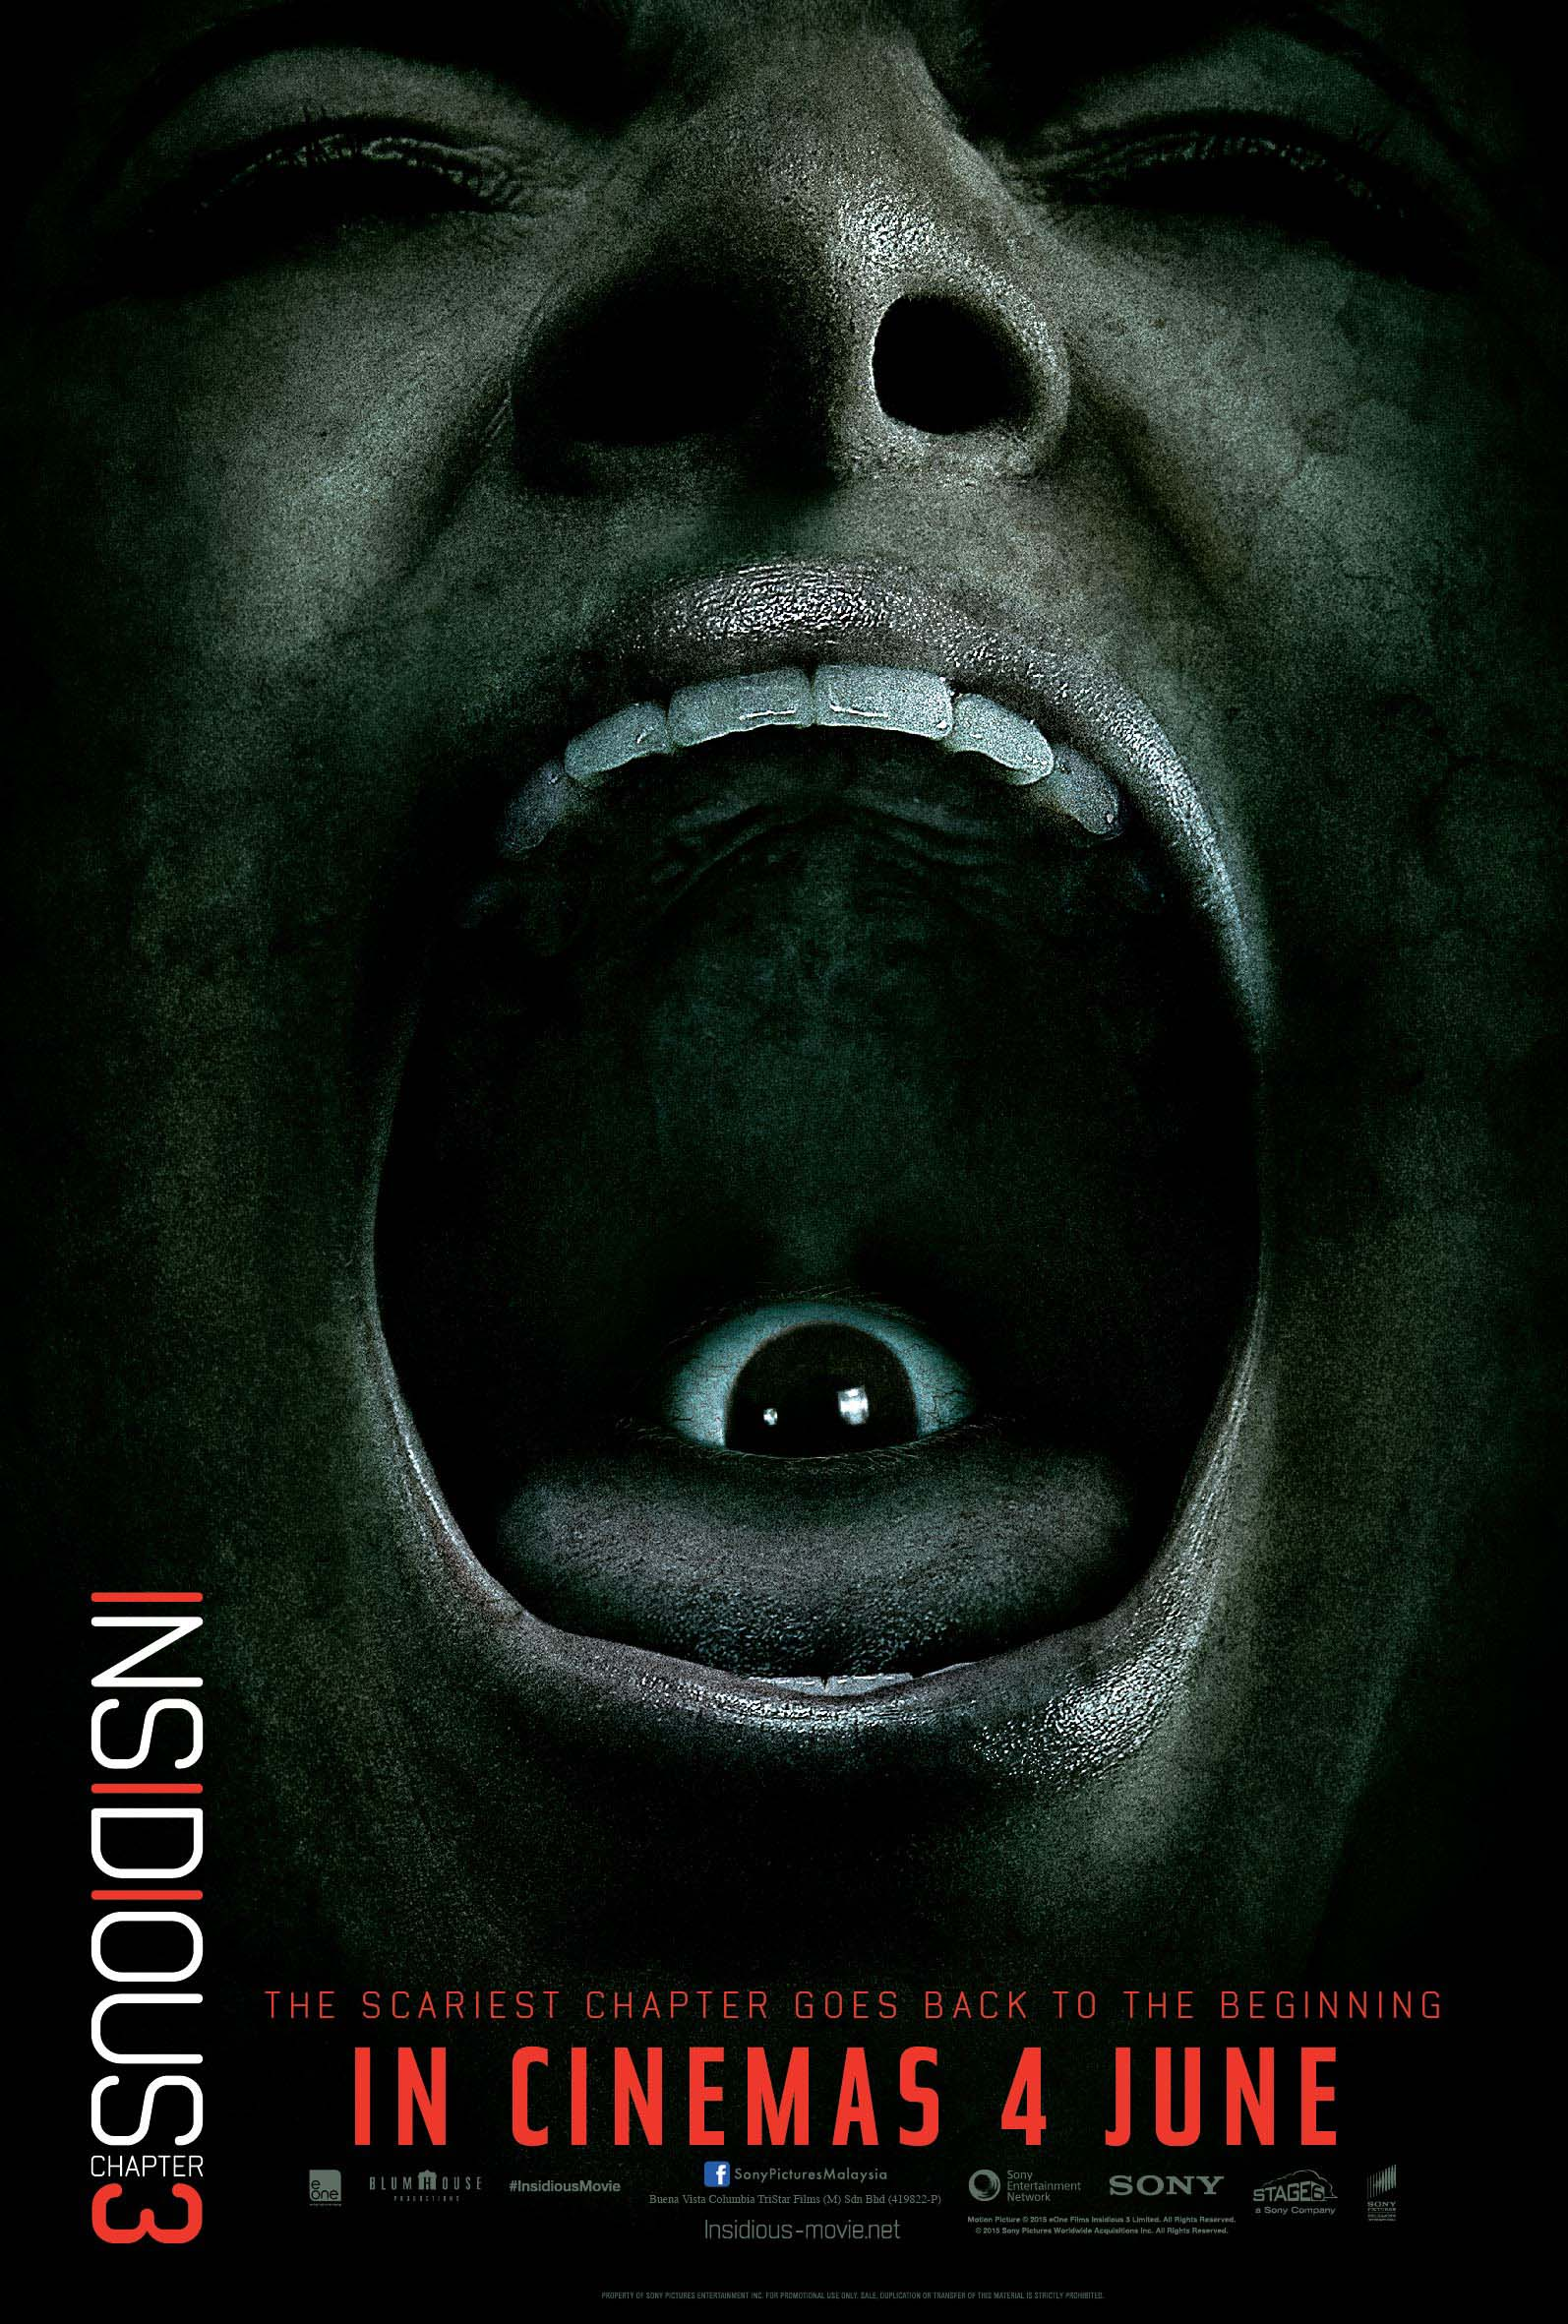 Insidious Chapter 3 Wallpapers Movie Hq Insidious Chapter 3 Pictures 4k Wallpapers 2019